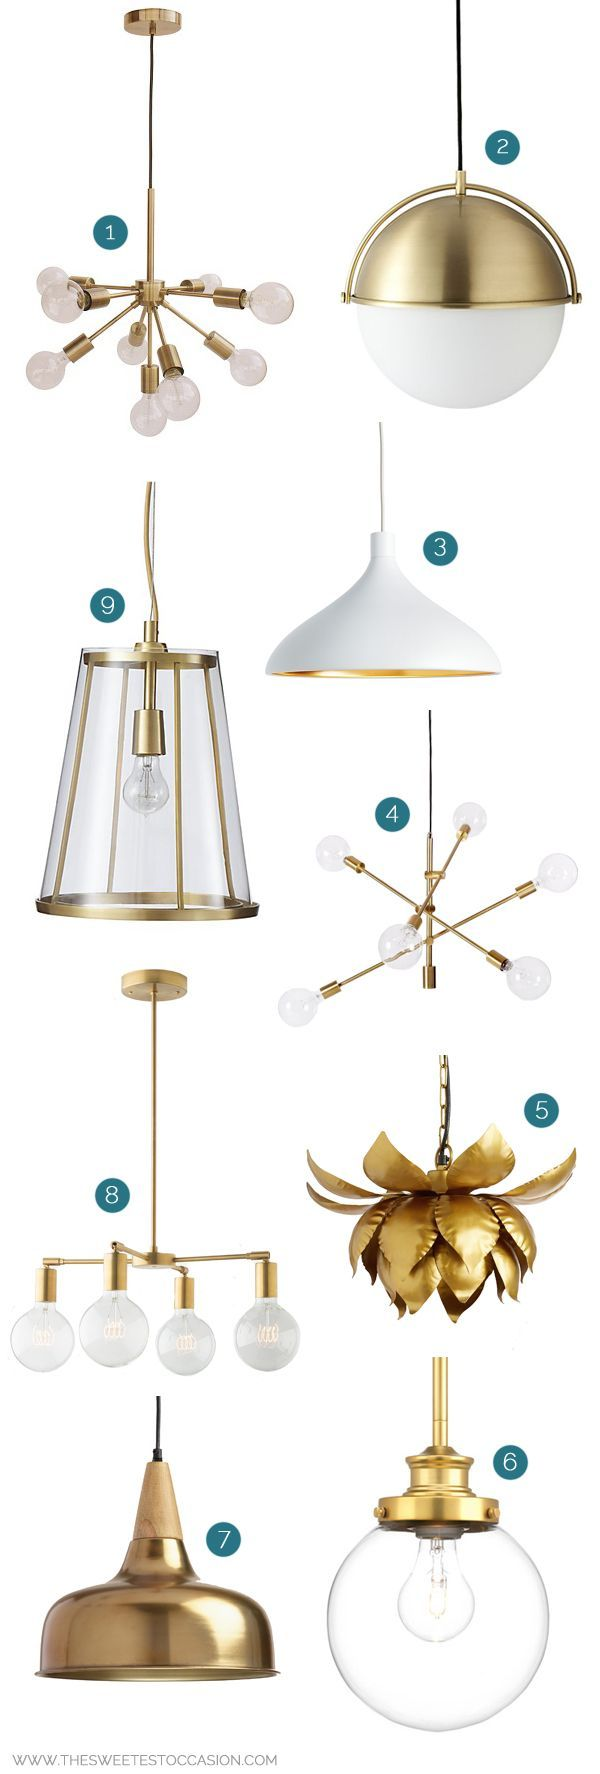 538 best chandeliers and lighting images on pinterest ceiling 9 awesome brass light fixtures on a budget under 350 and other home improvement arubaitofo Image collections